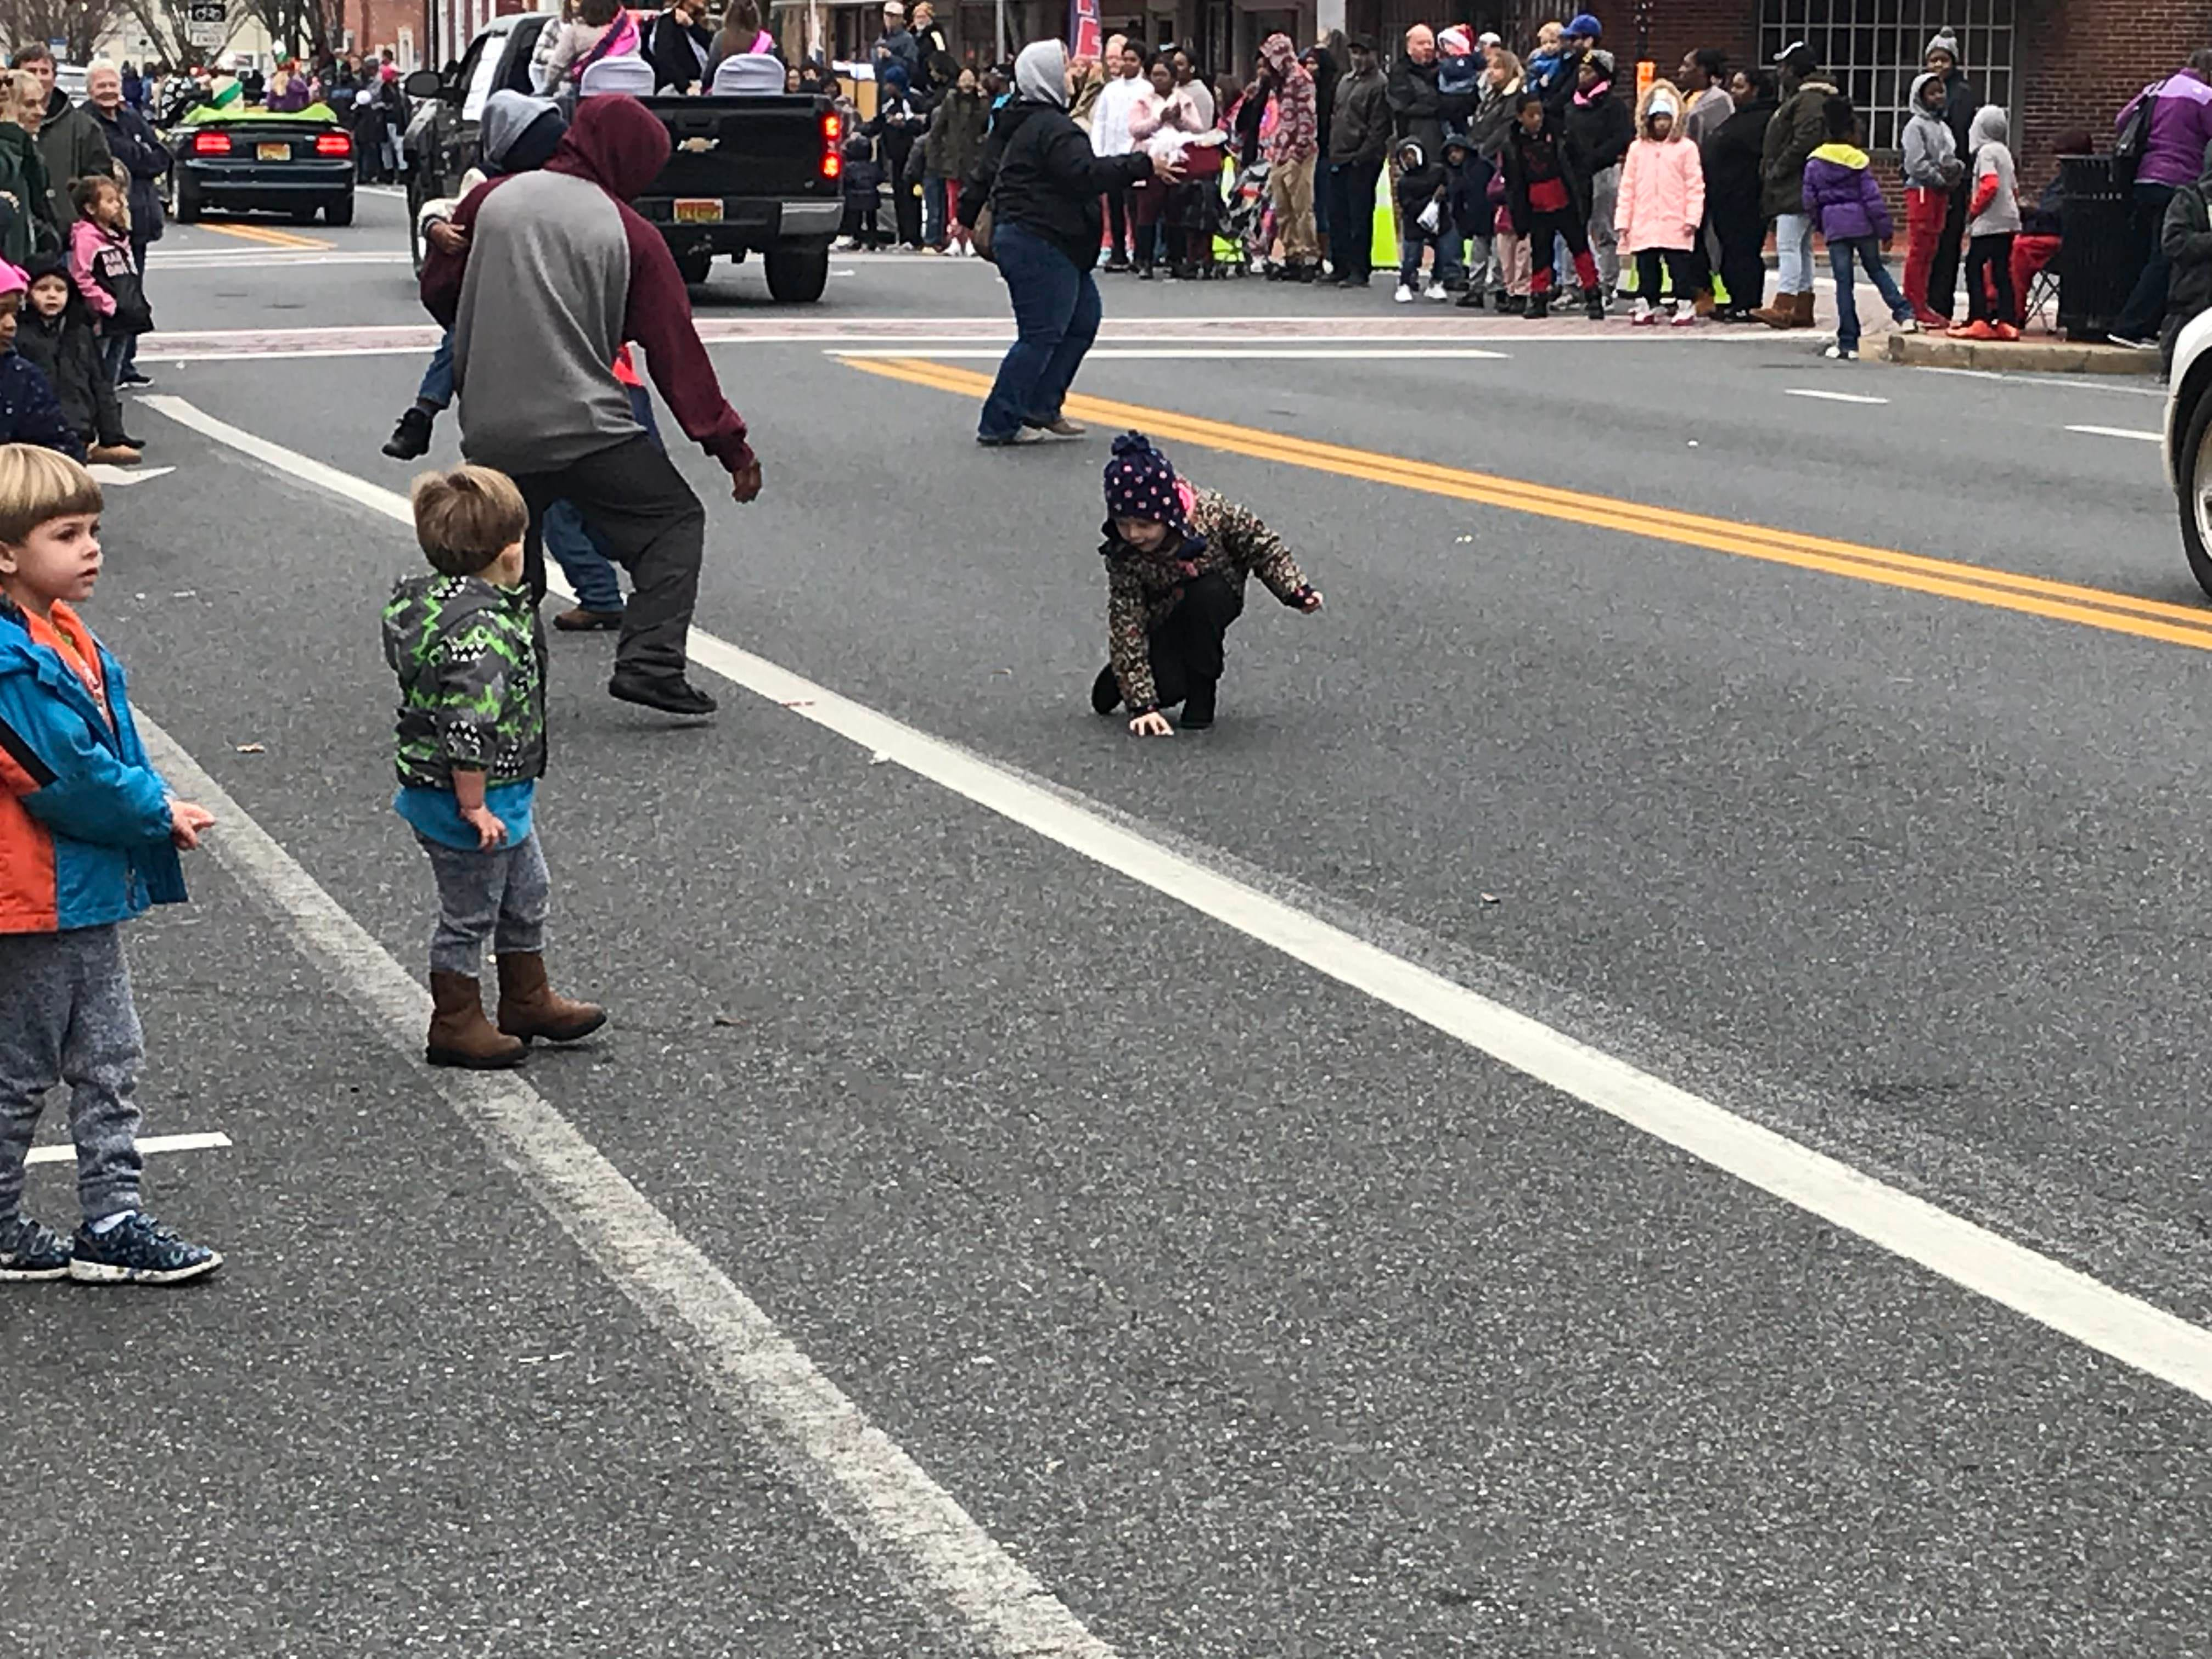 Children collect candy thrown by people in the parade.